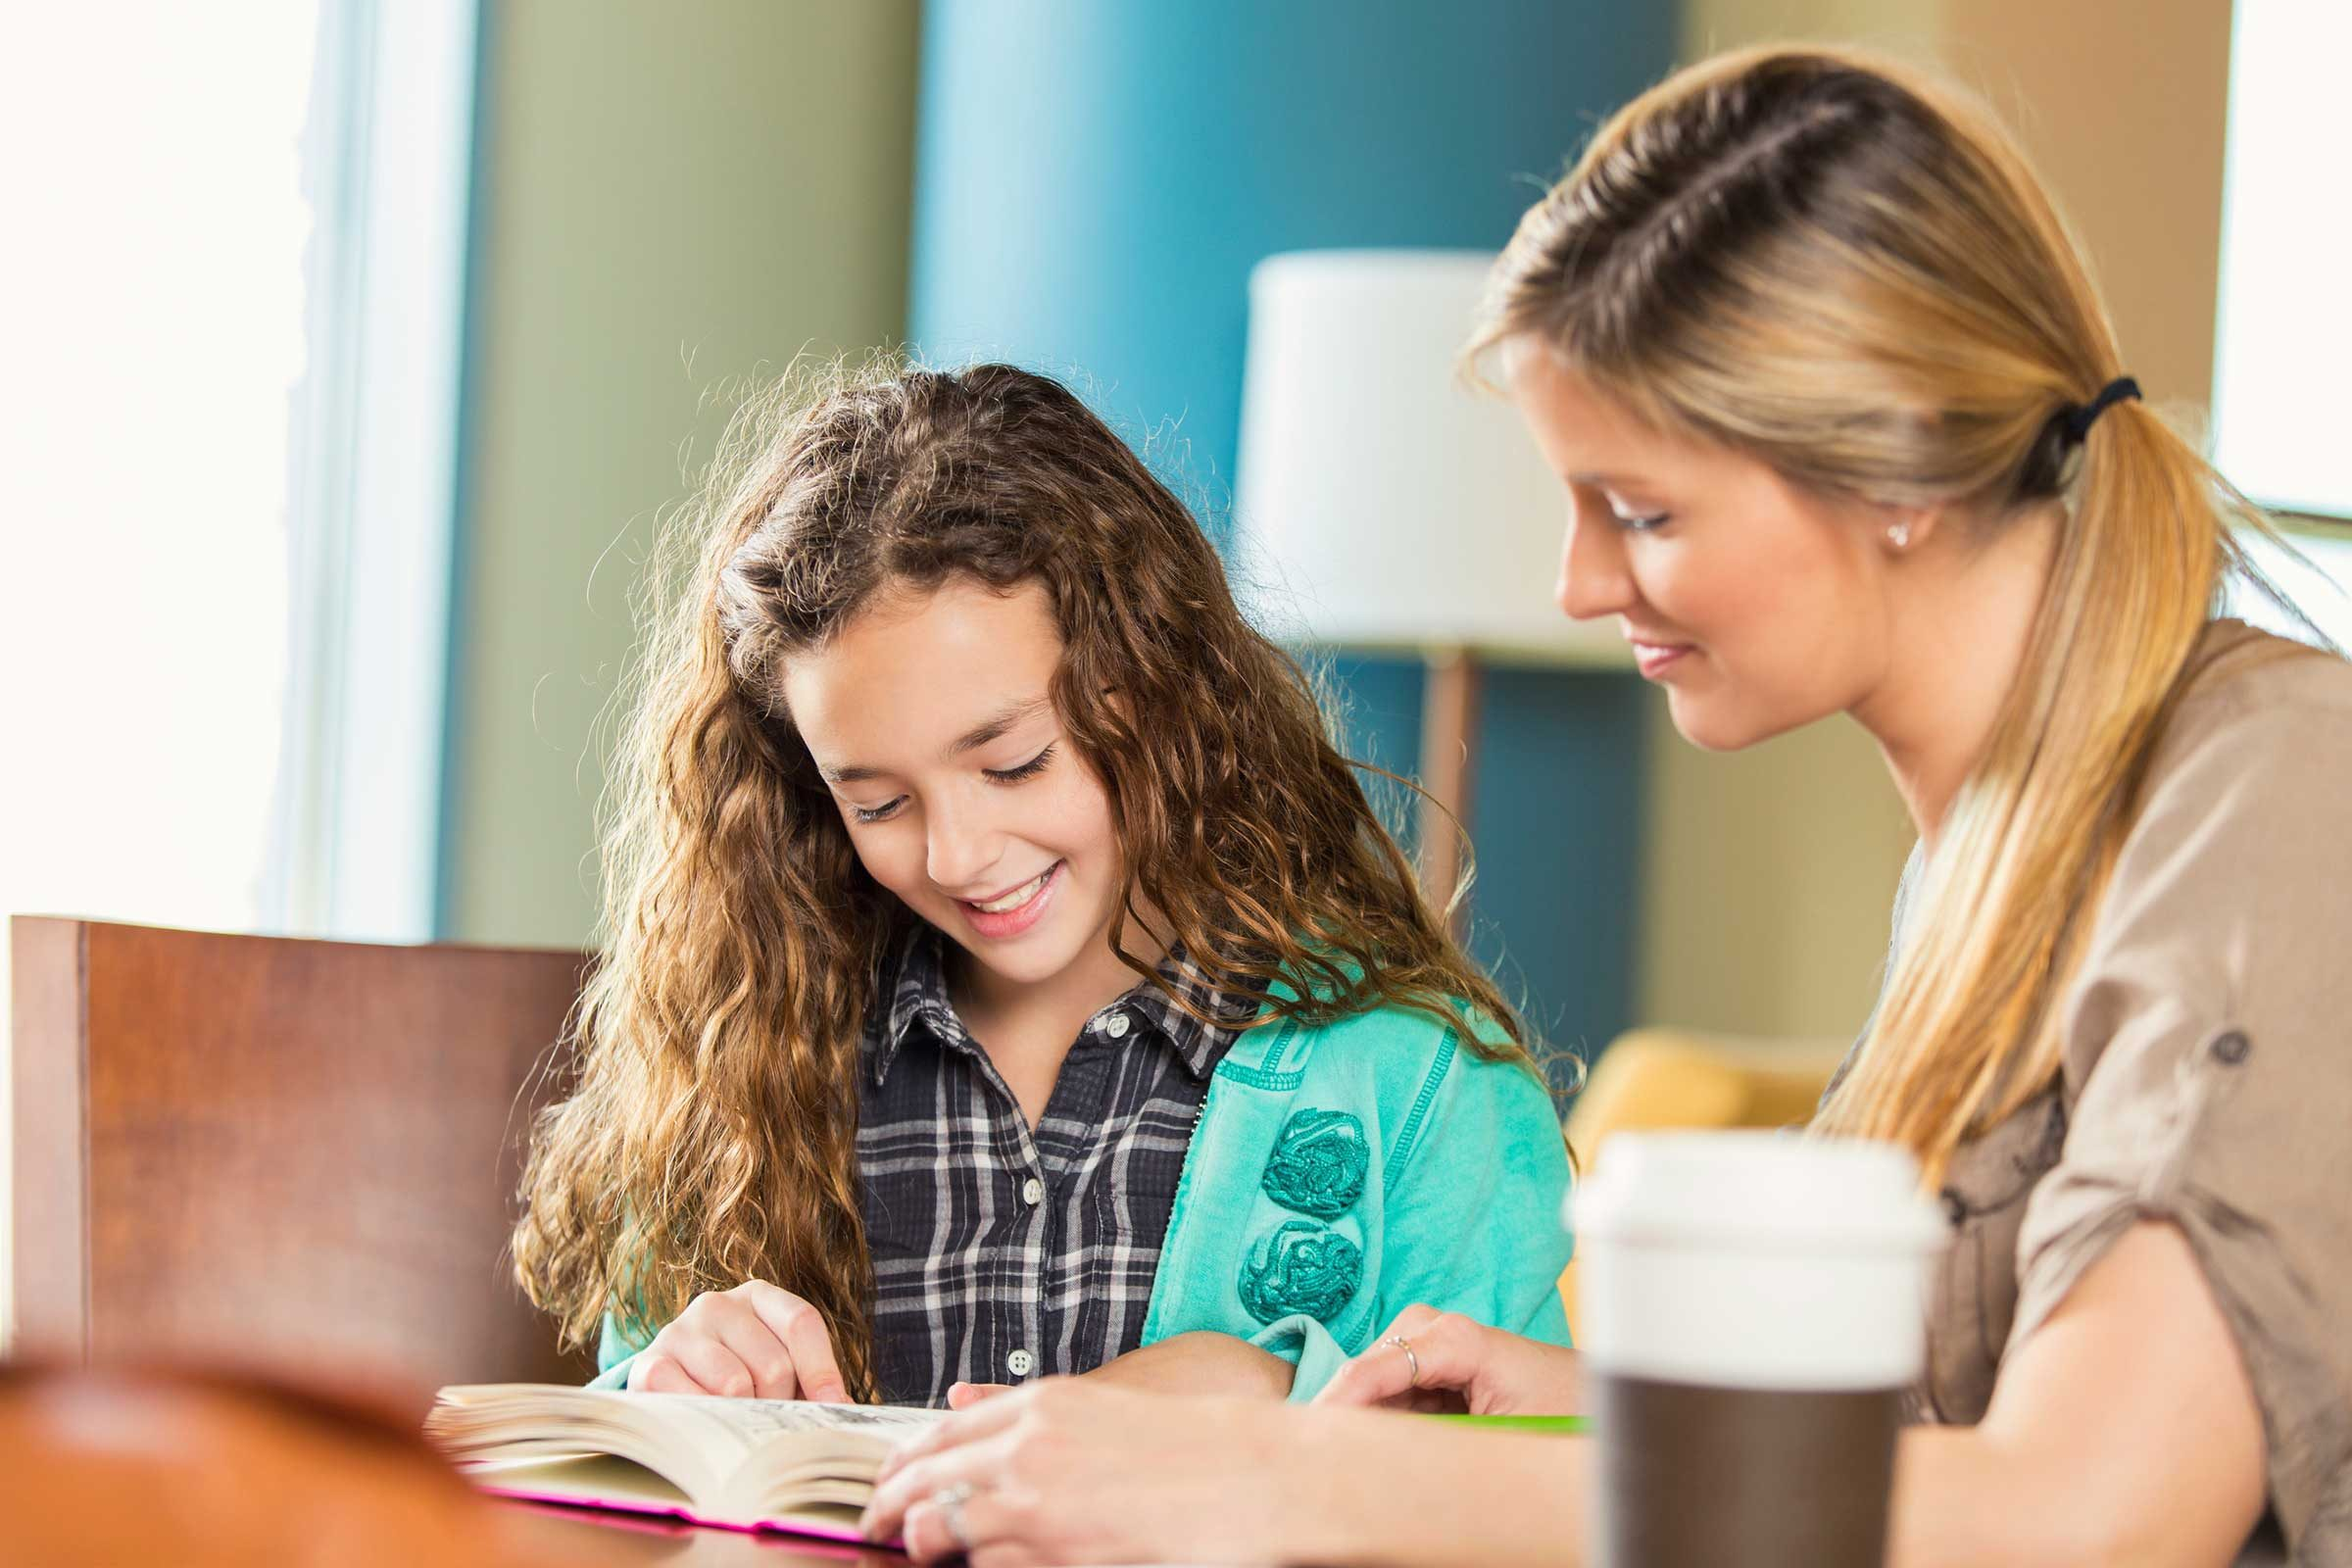 Our firstborn almost always get a better education than our younger kids